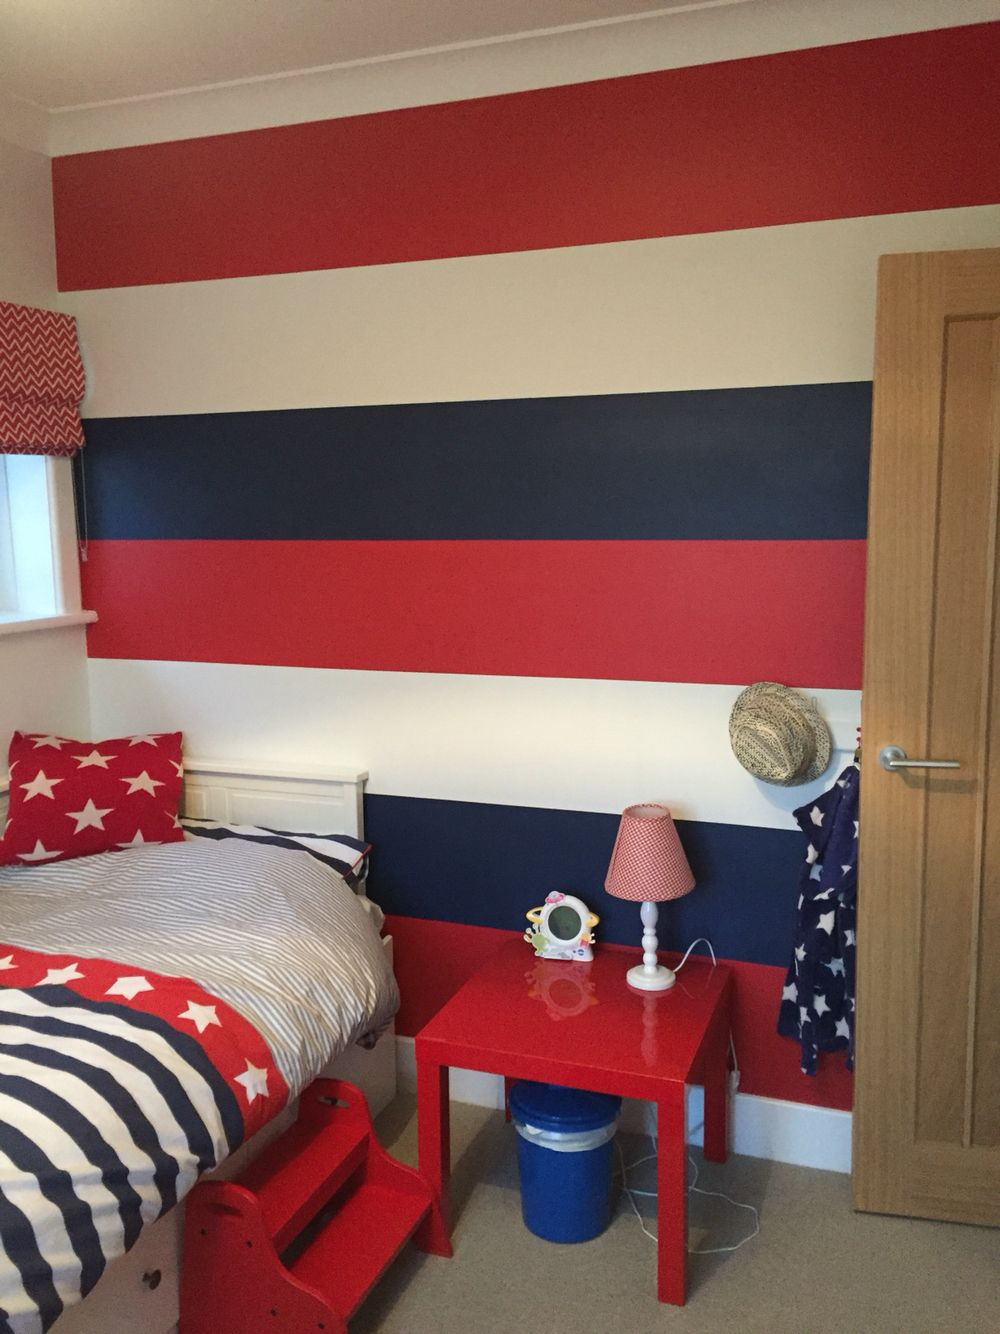 Bedroom colors blue and red - Red And Blue Boys Bedroom